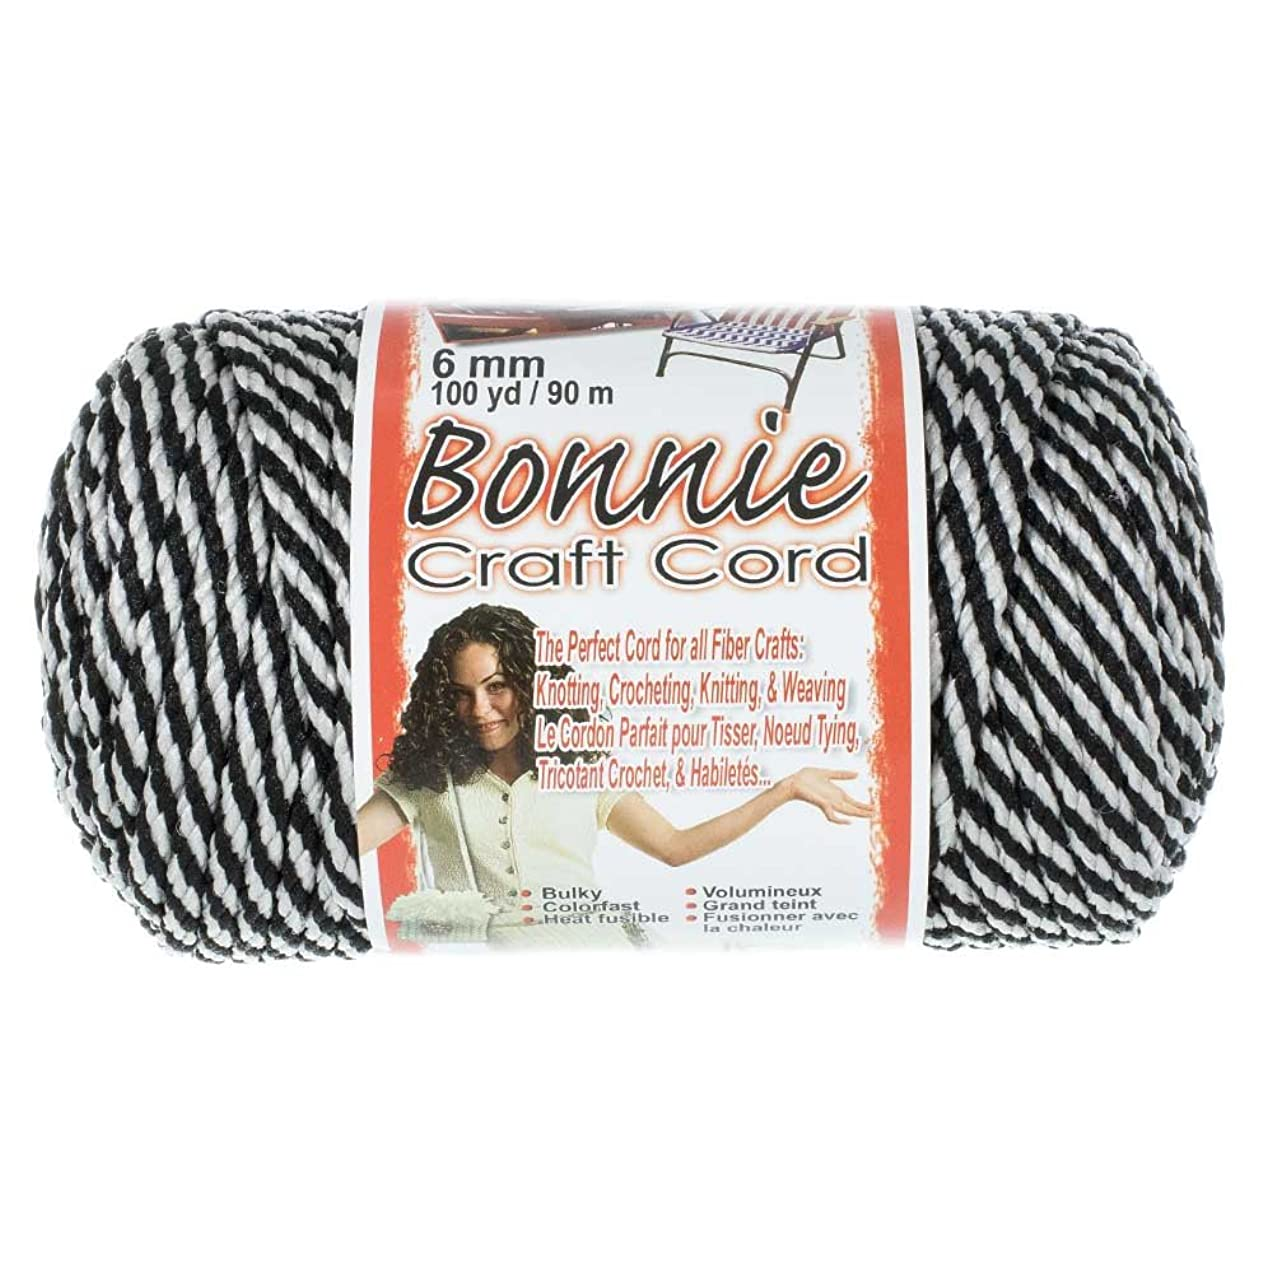 Bonnie 6mm Crafting Cord - for Macramé and Other Crafts - 100 Yard Spools (Black Licorice)